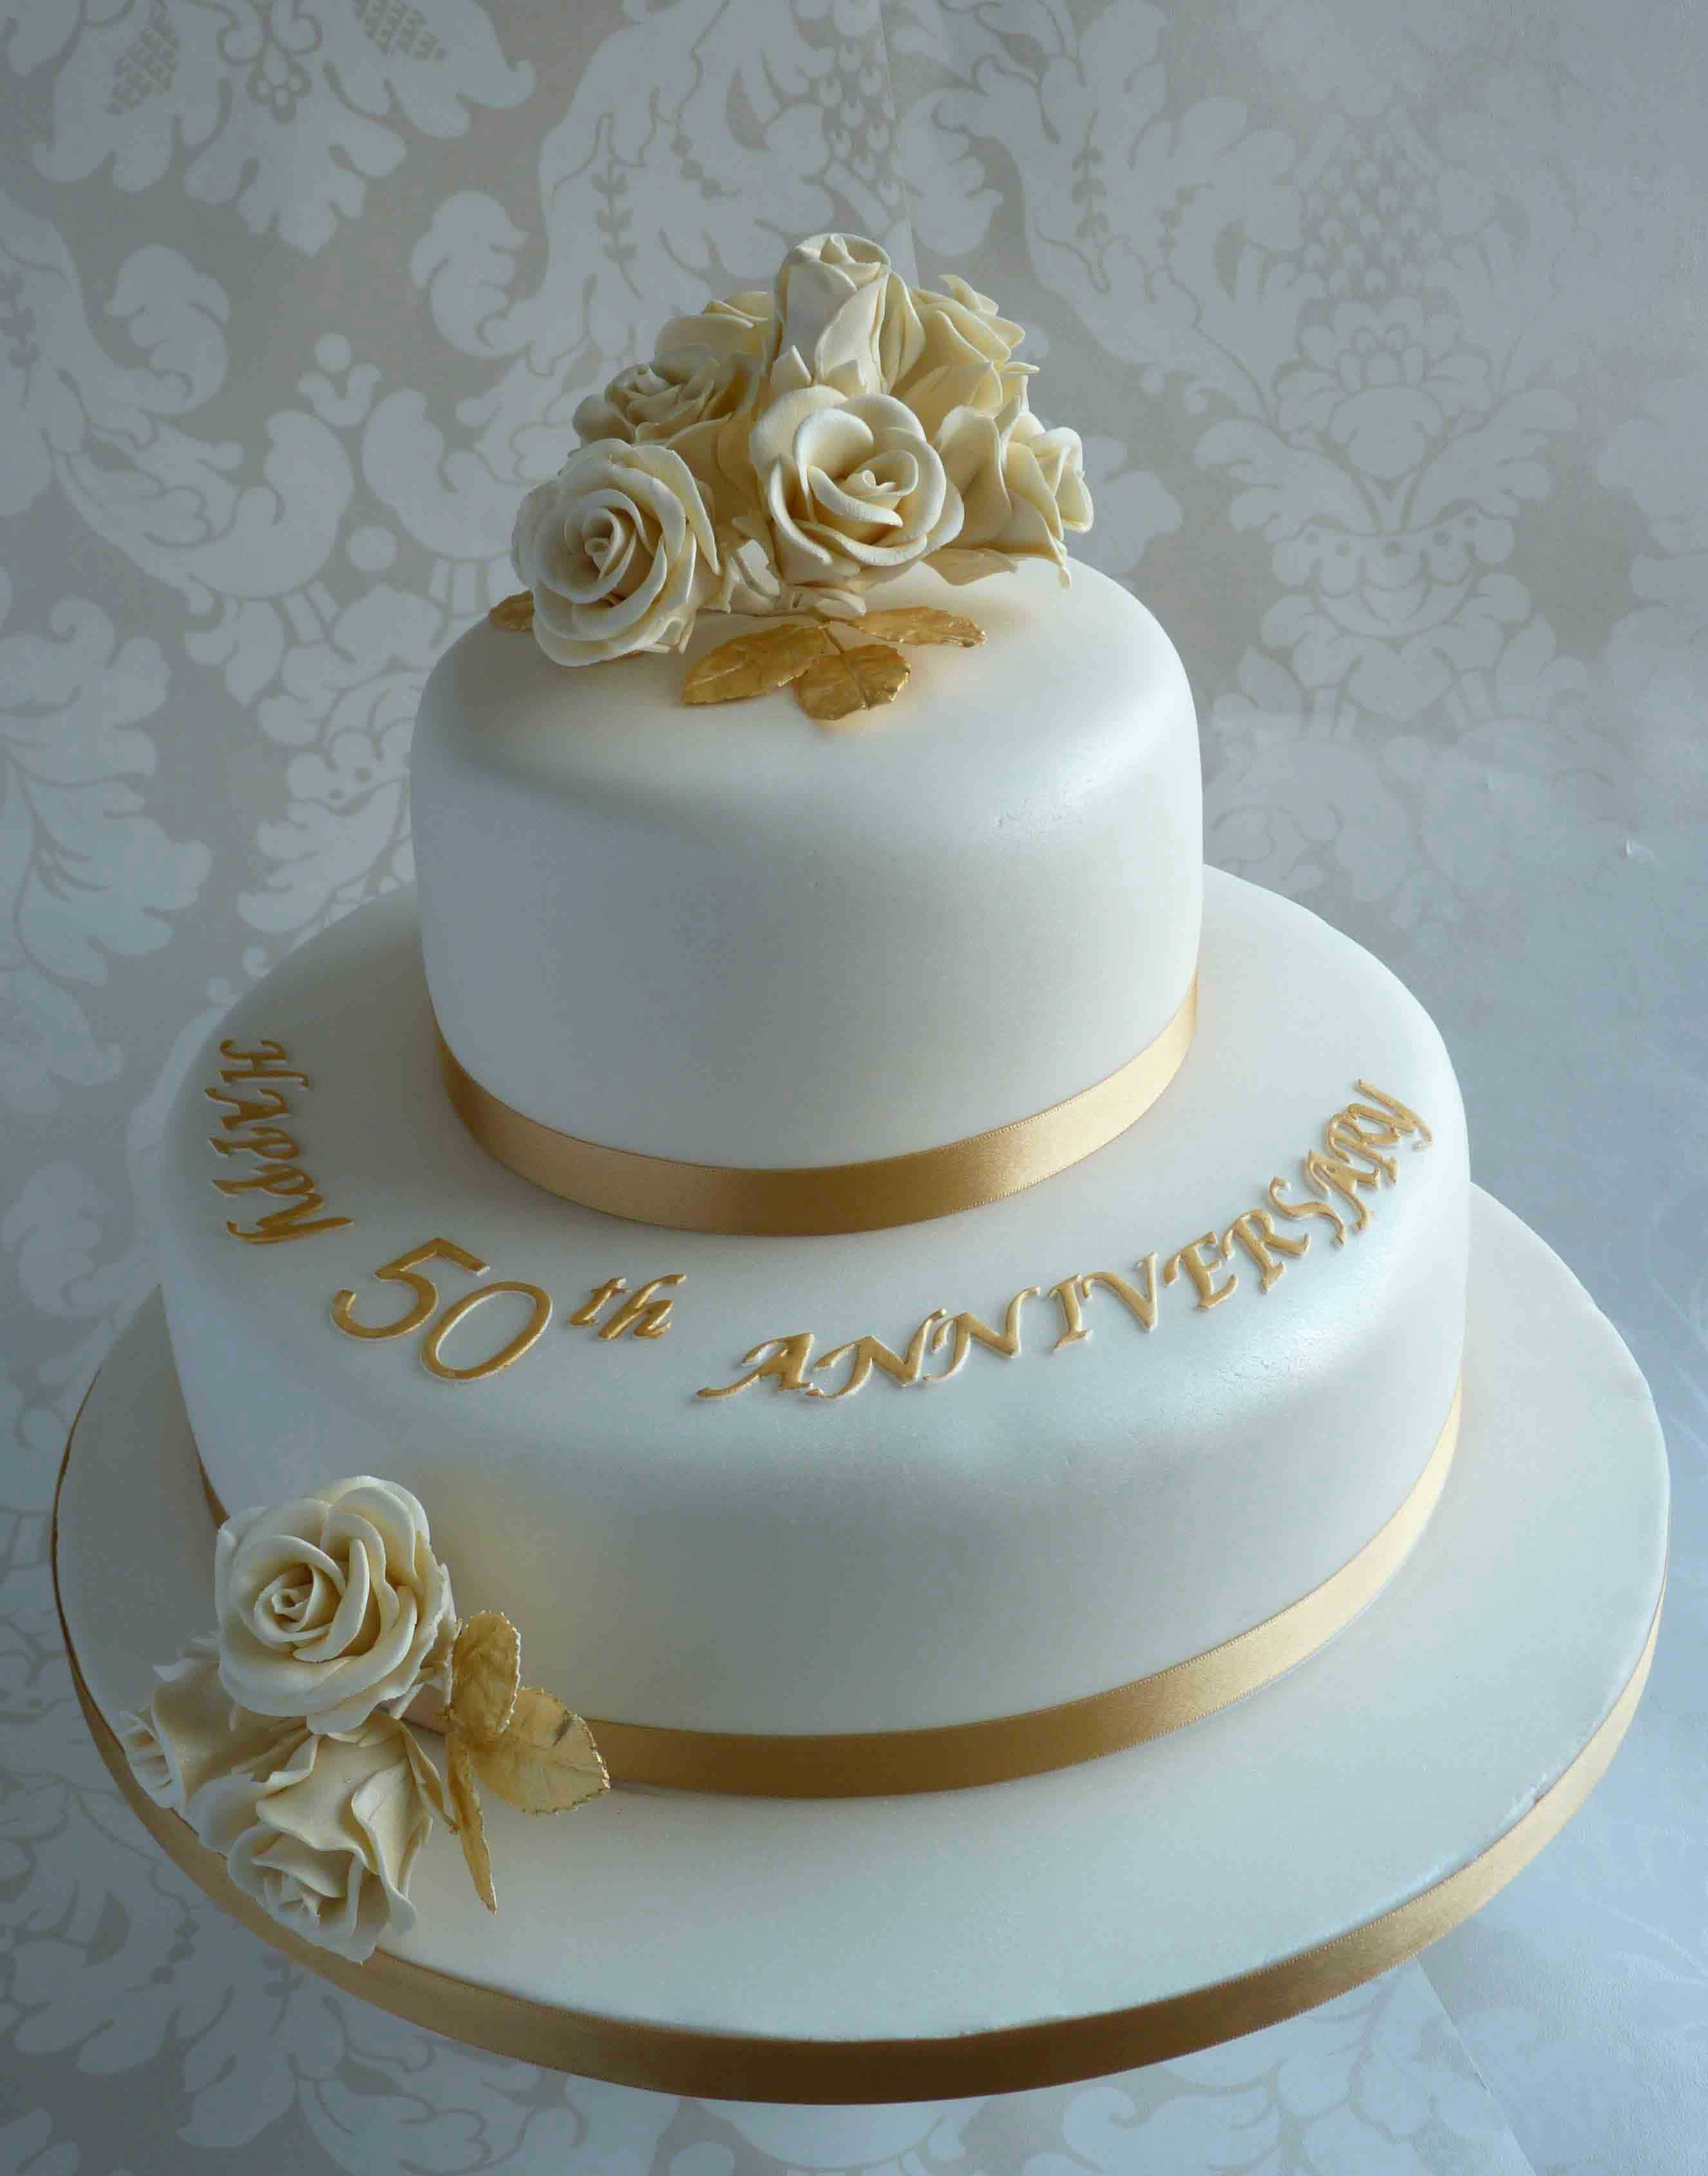 cakes for 50th anniversary quick links about us